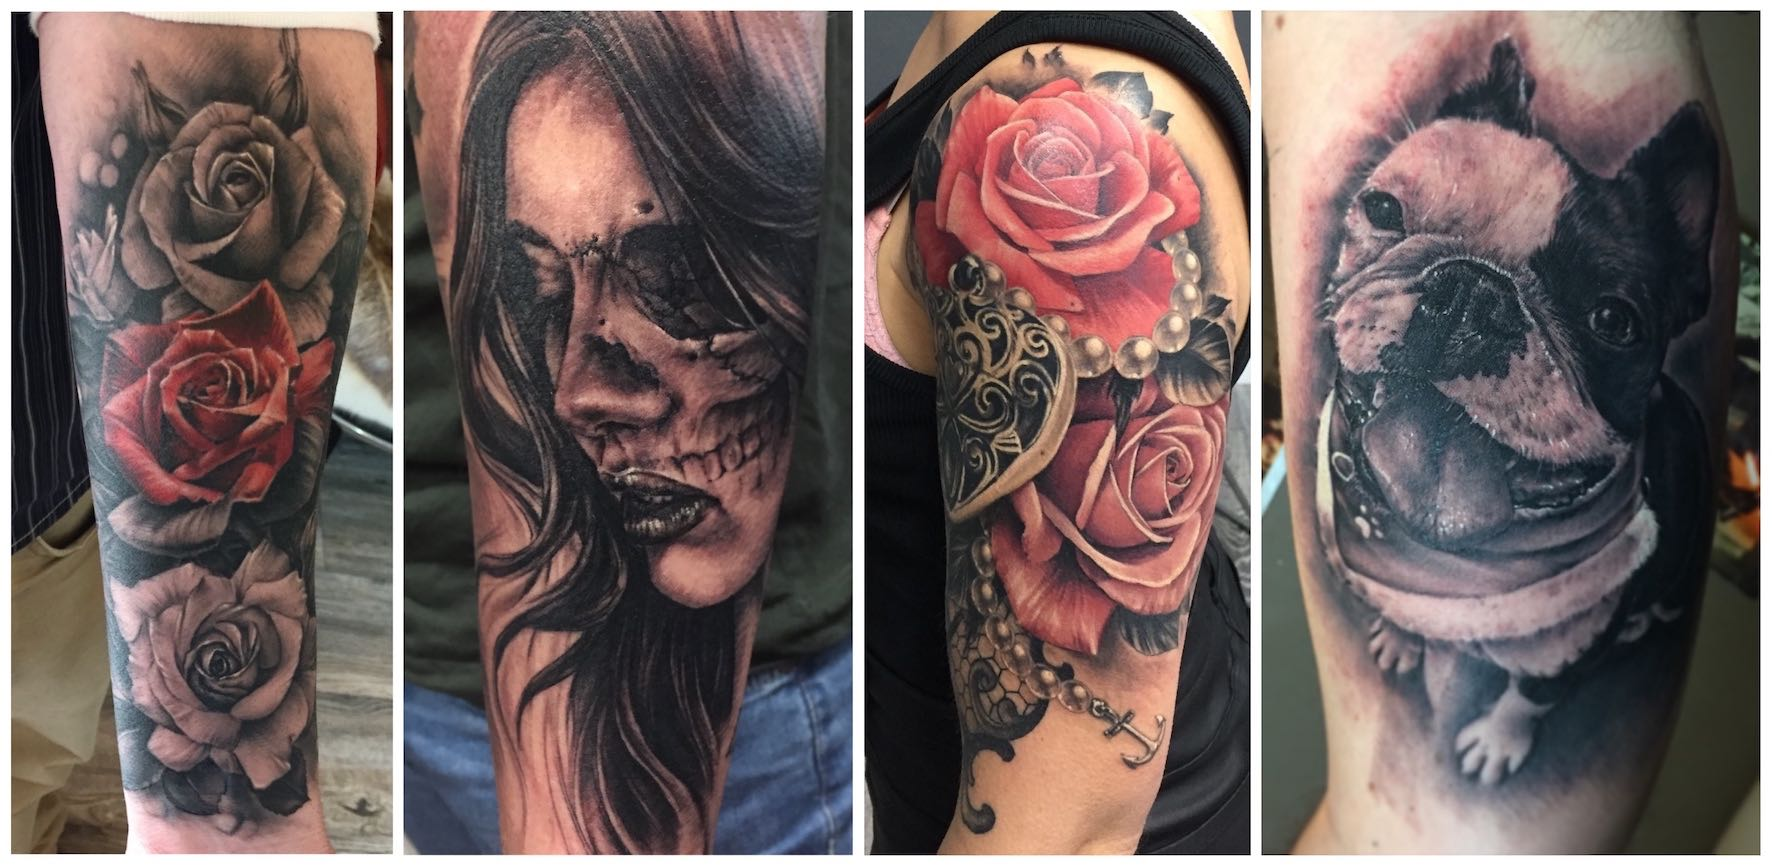 A selection at tattoos done by Dean Clarke